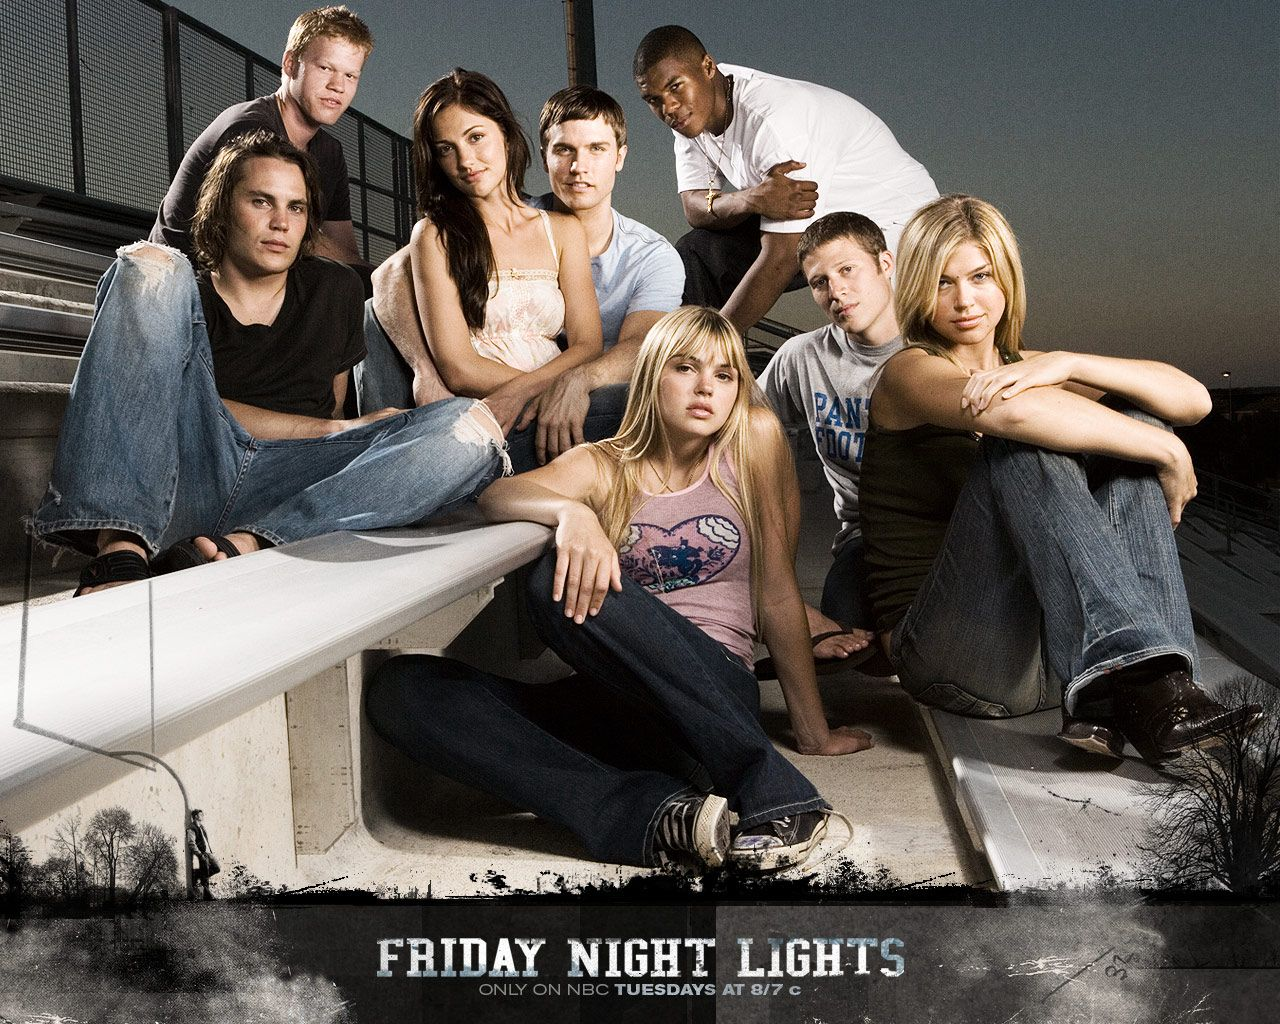 Friday Night Lights: The Complete Series Review Idea